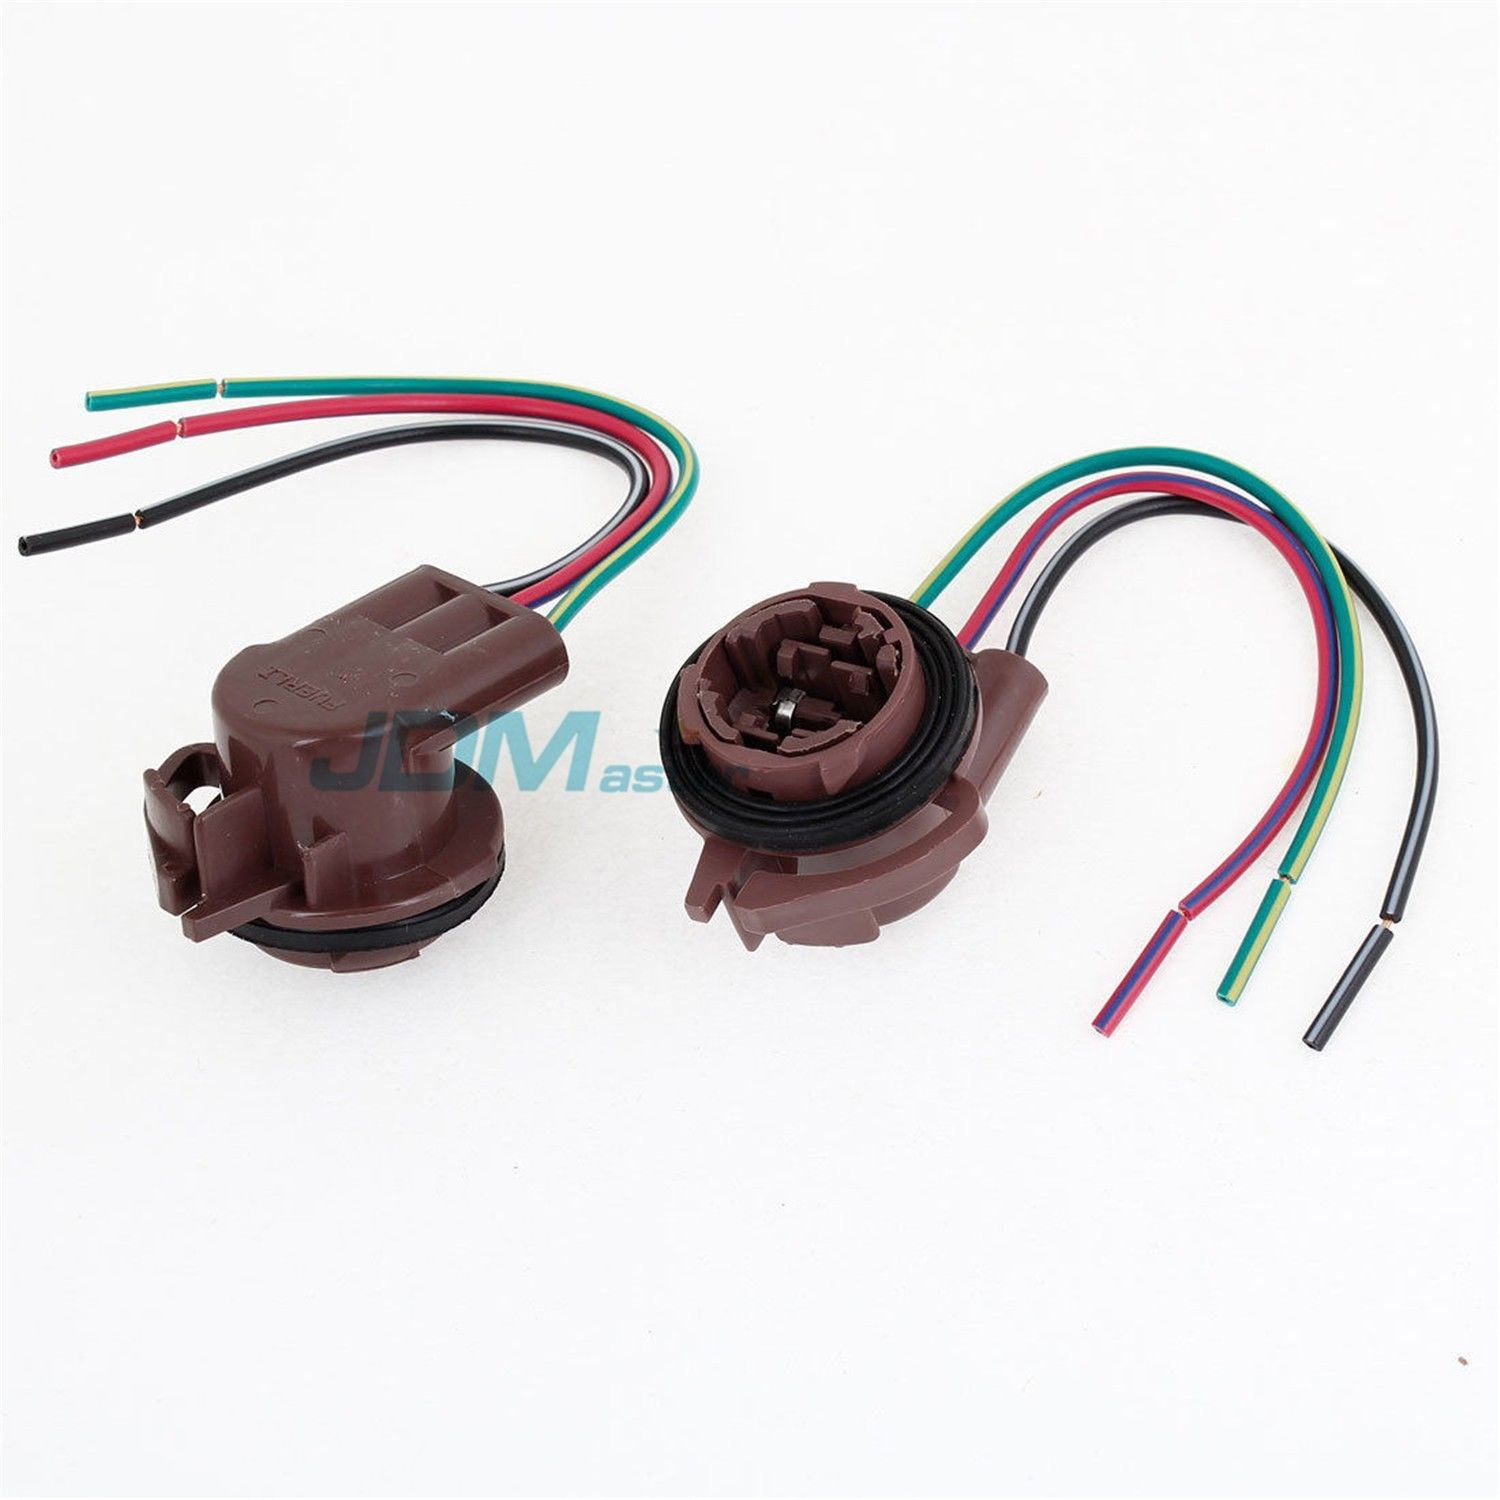 Jdm Astar 3157 4157na Bulb Socket Turn Signal Light Harness Wire 2004 Honda Odyssey Wiring Melted Plug Connectors 750164300279 Ebay